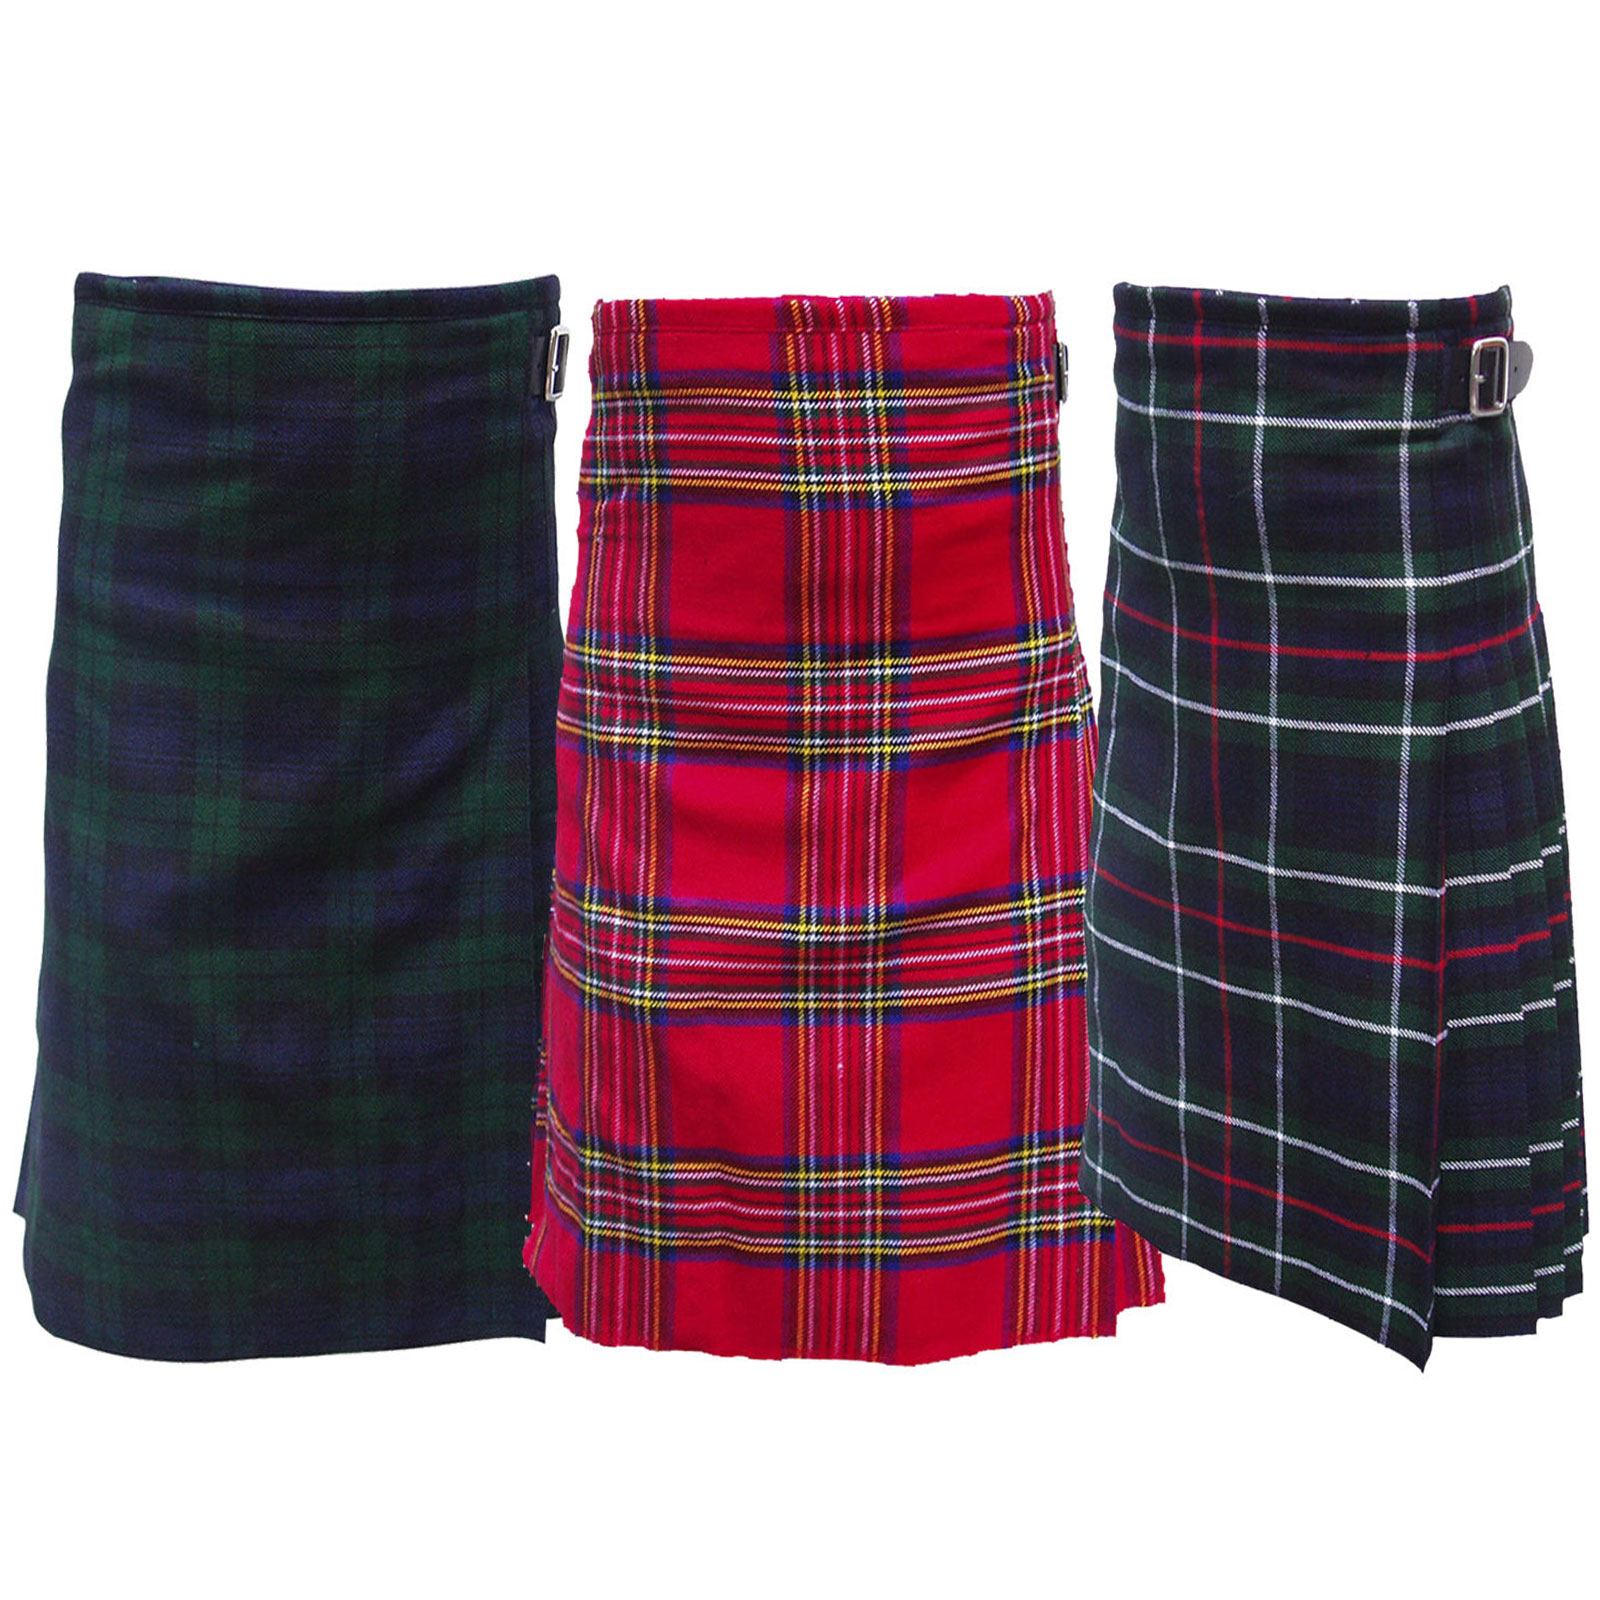 scottish-5-yard-acrylic-highland-casual-kilts-main